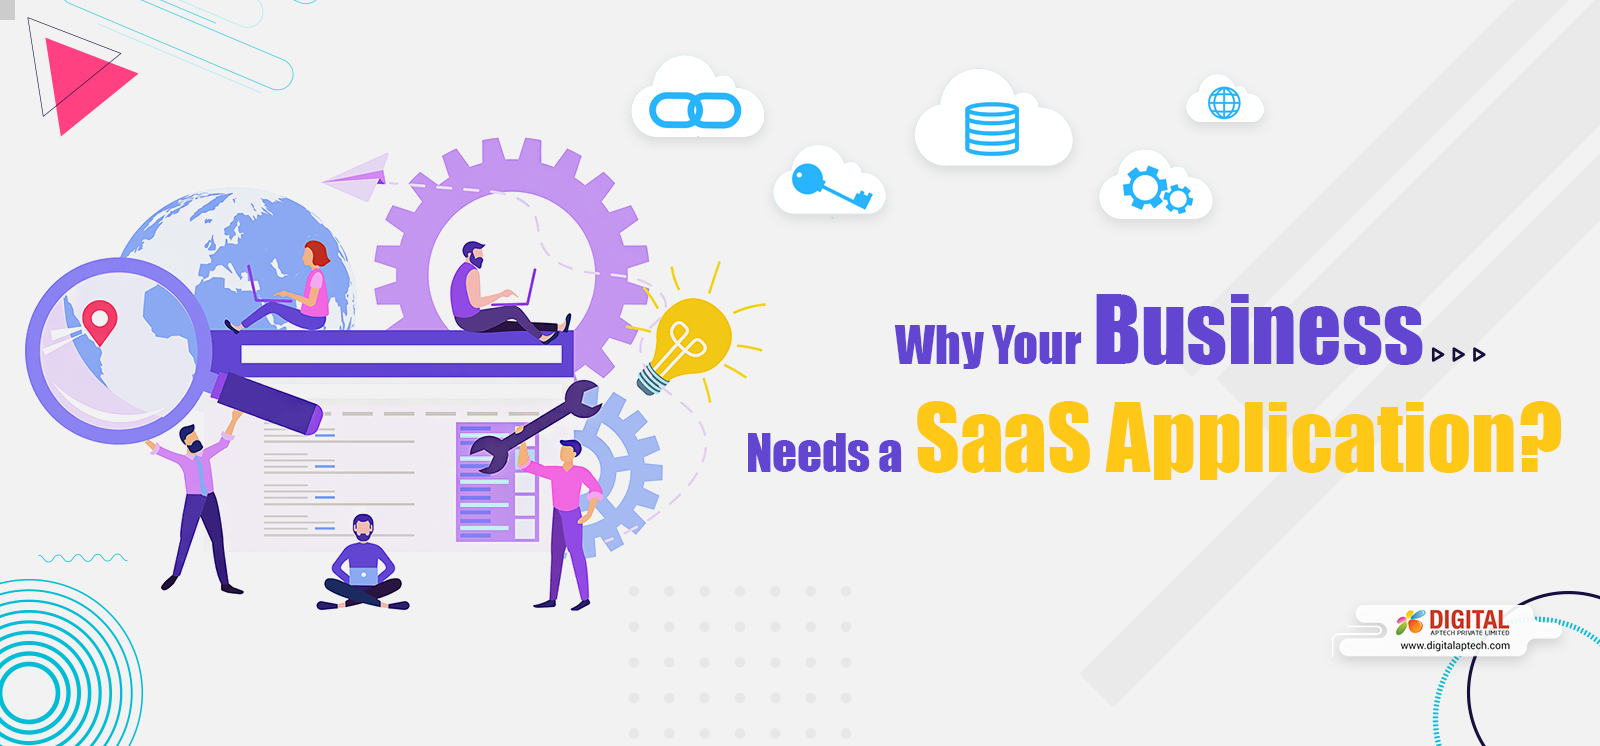 Increase Your Business Growth with SaaS Applications